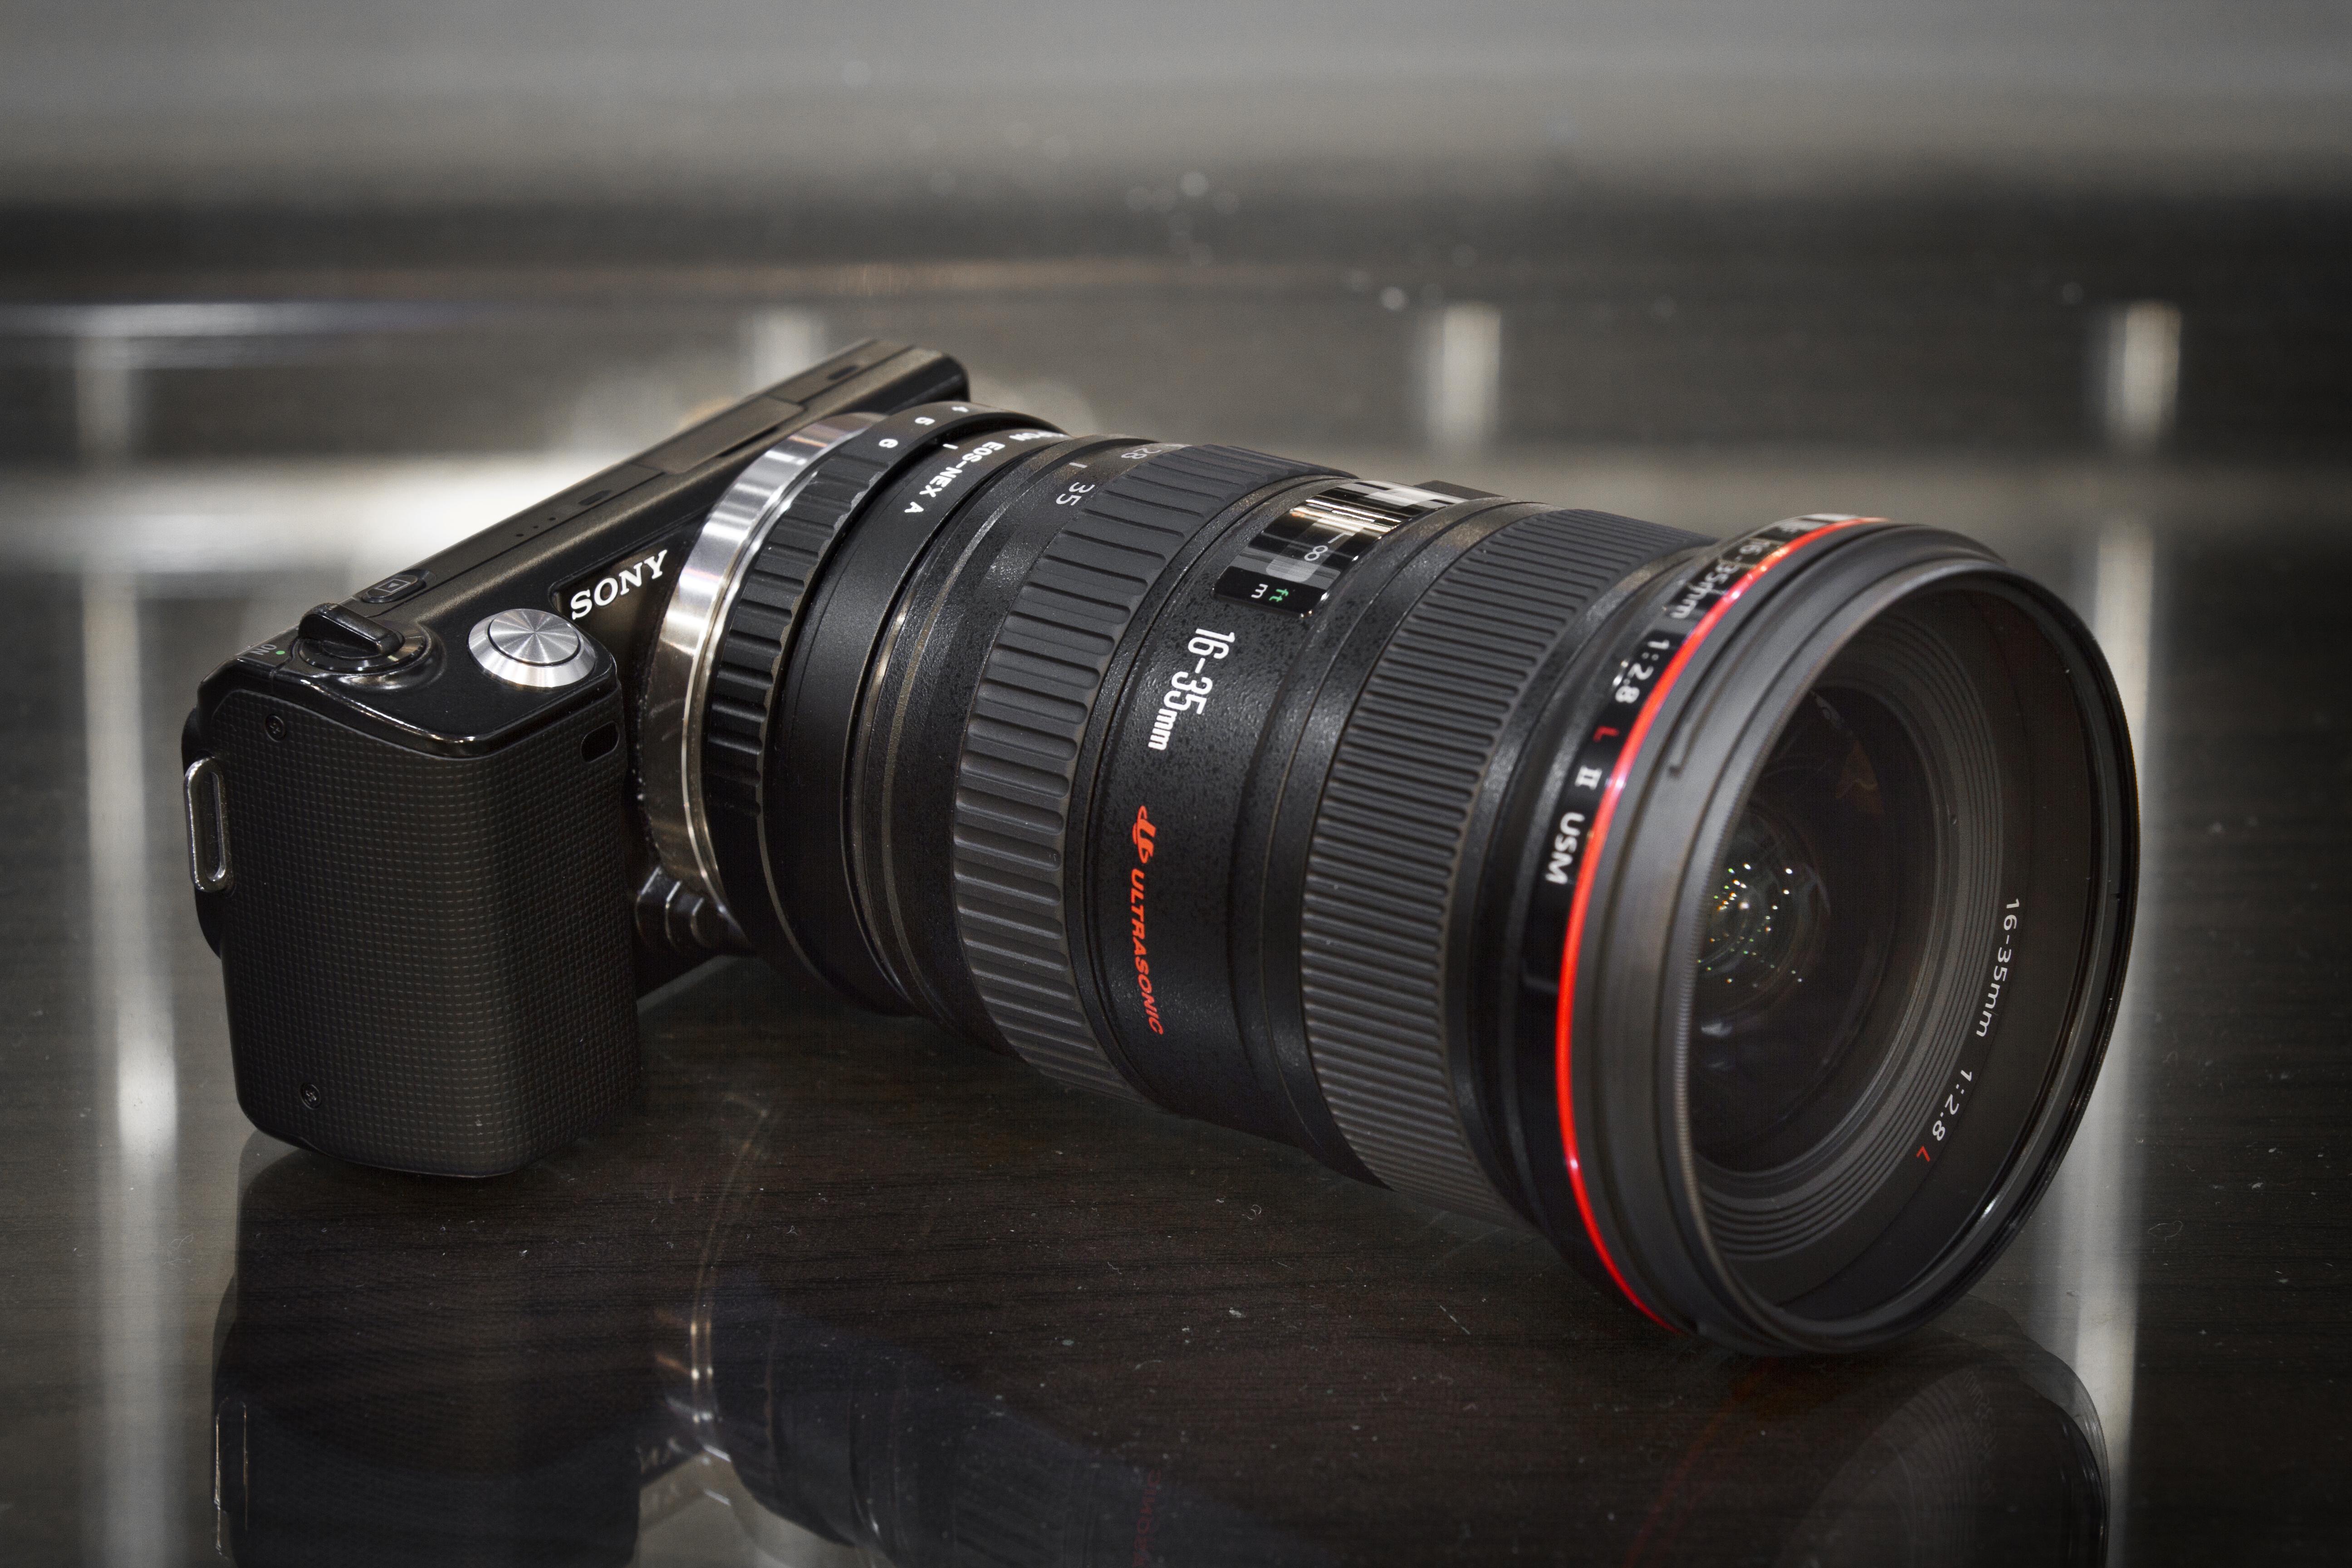 793c93a270 Canon EF 16-35mm f/2.8 L IS lens adapted to the Sony NEX-5 with a